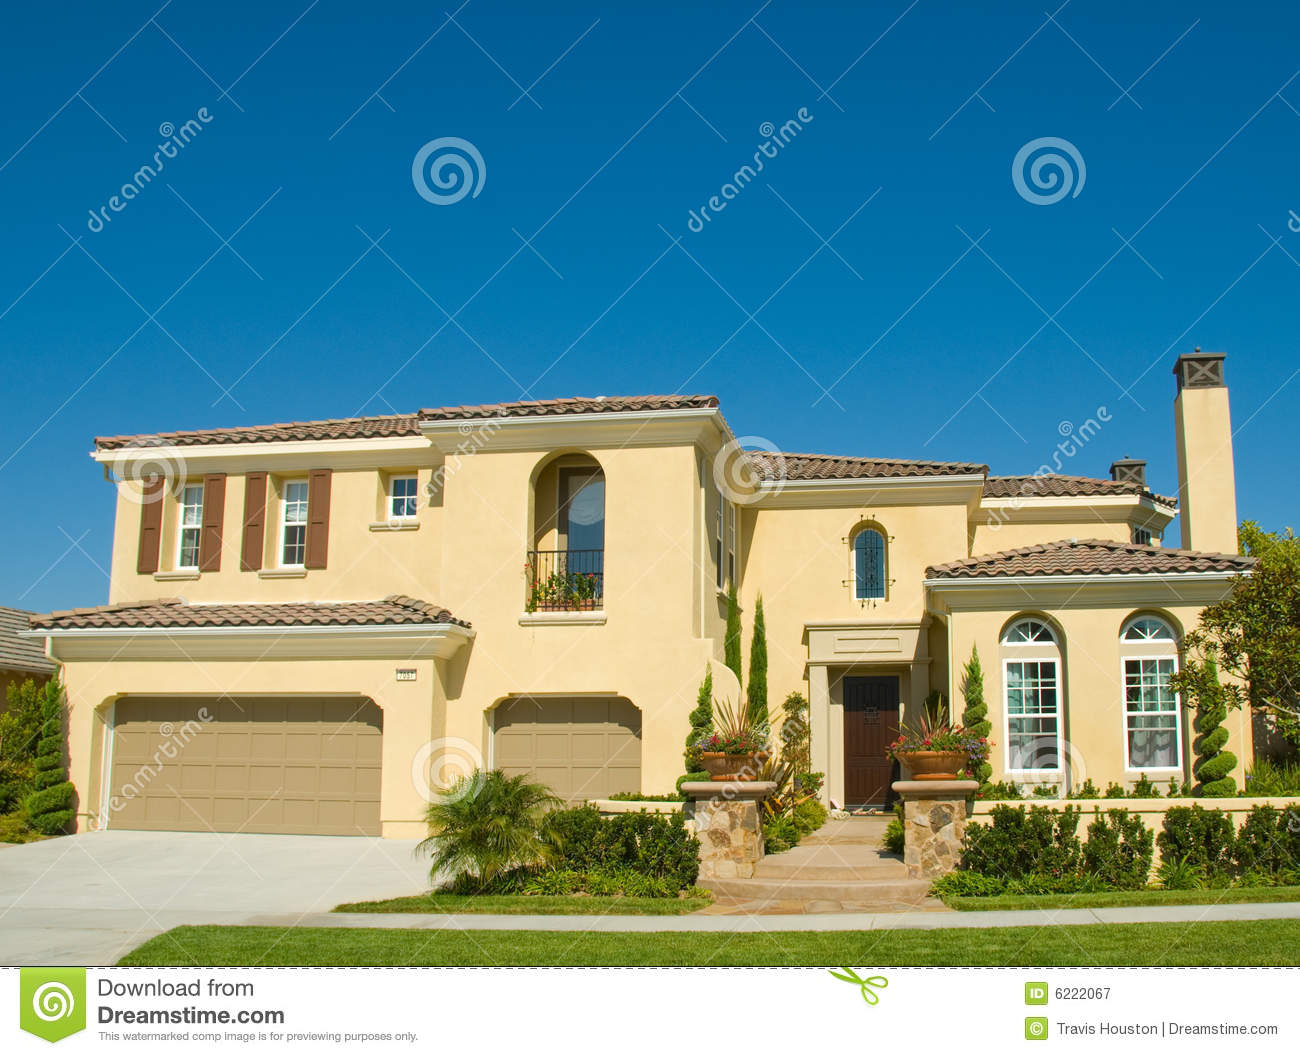 Picture Perfect Home In Nice Community Royalty Free Stock